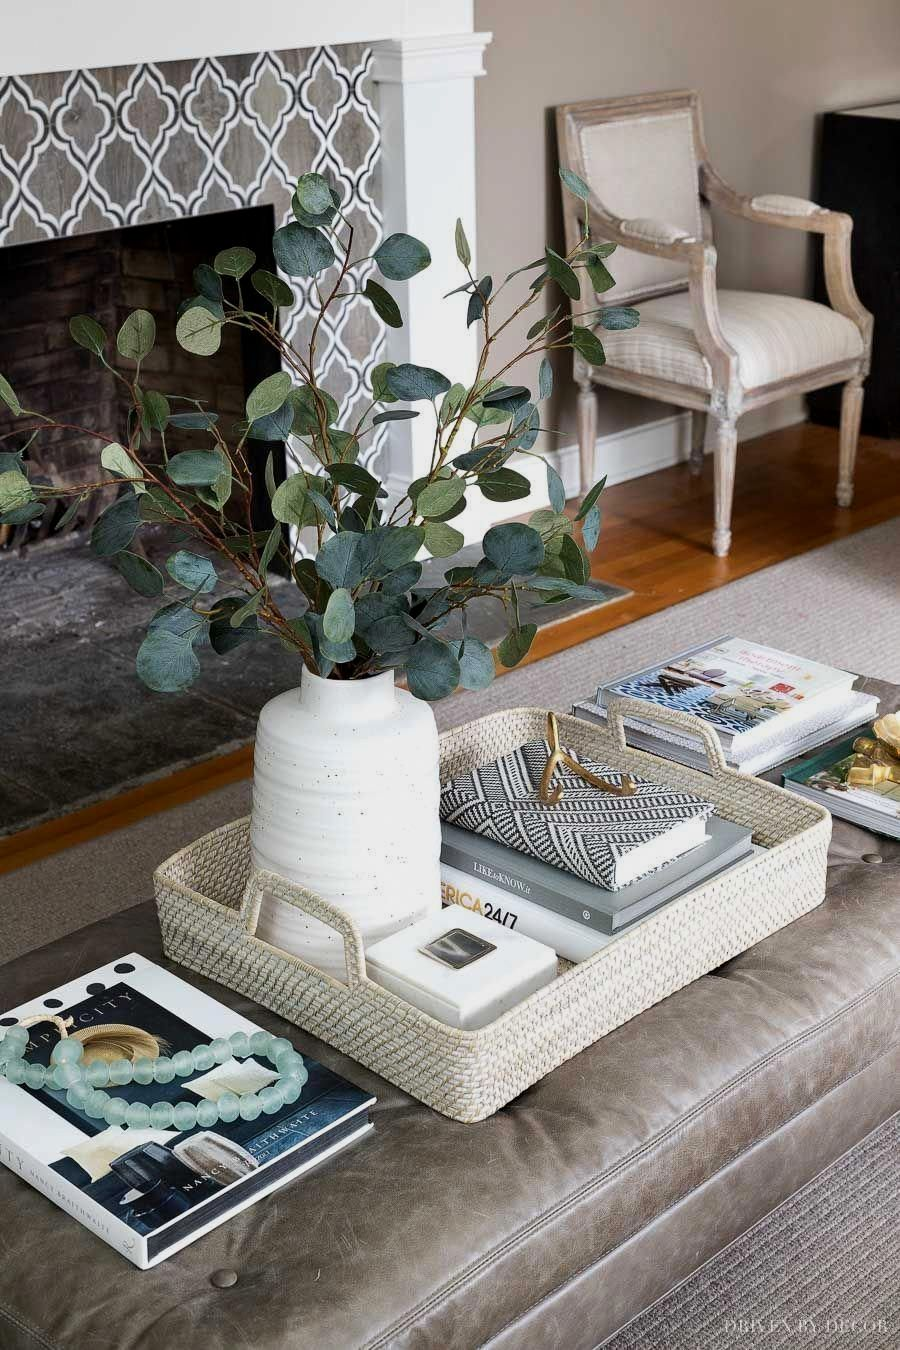 - Pin On Home Decor